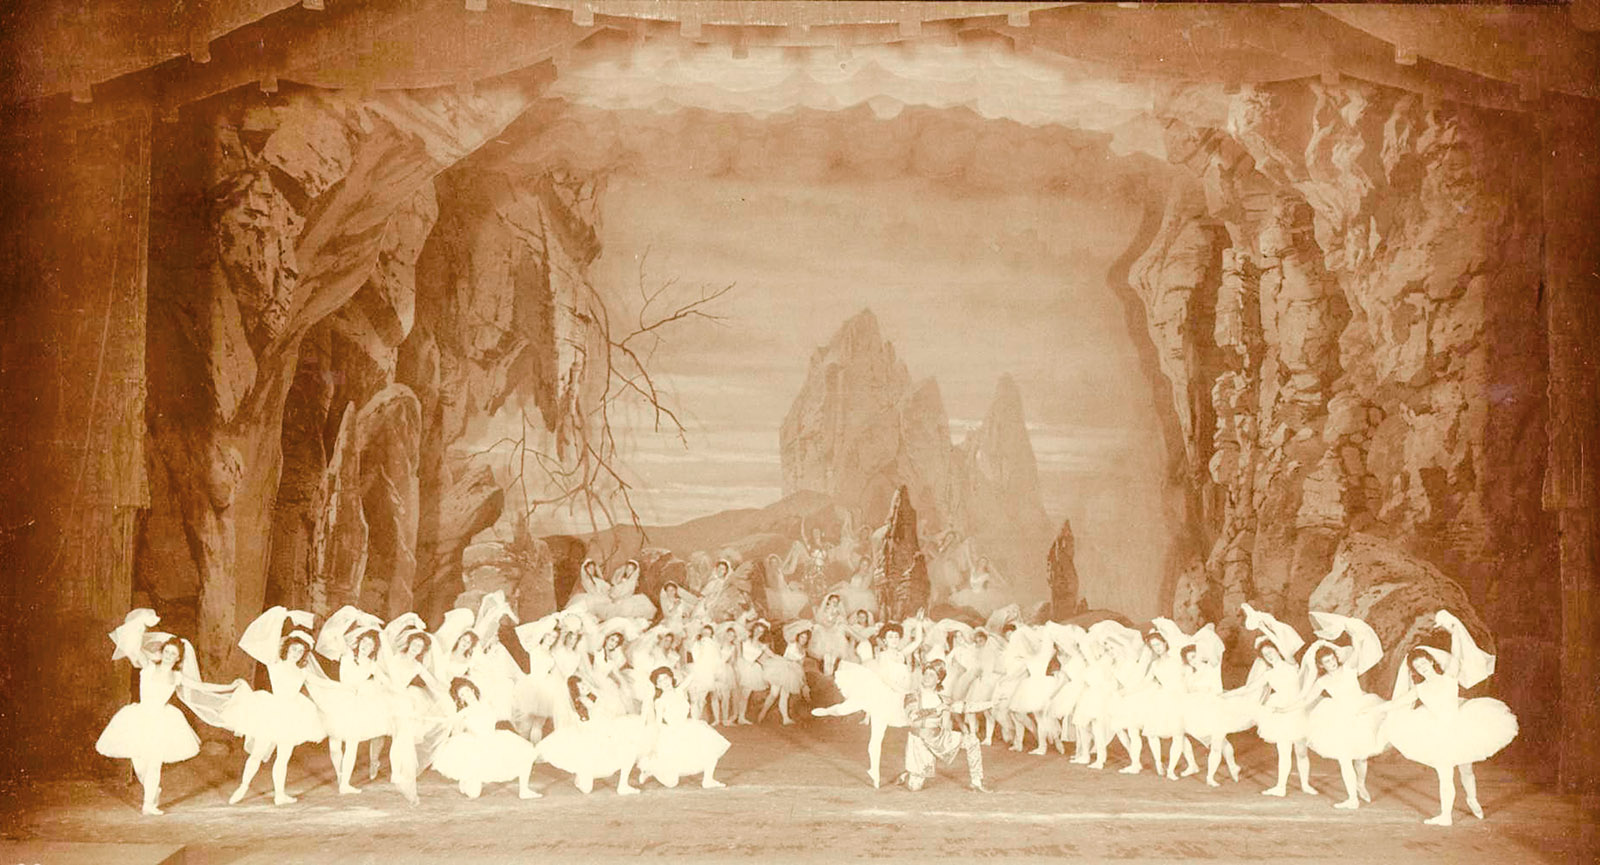 A scene in the Kingdom of the Shades from La Bayadère, 1900